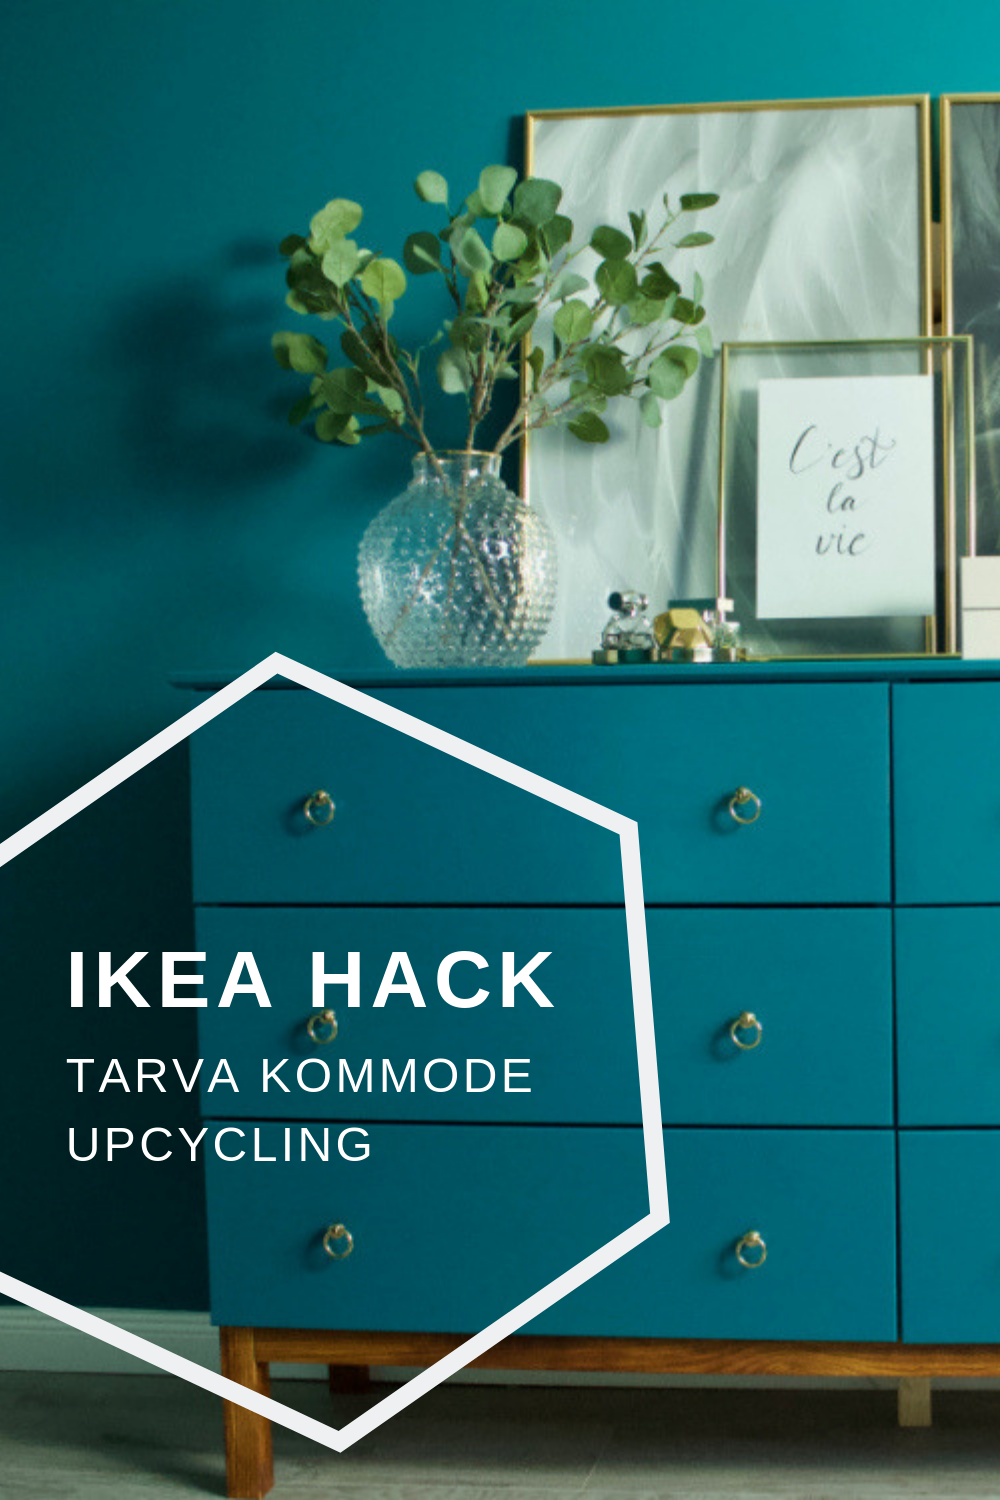 Tarva Kommode Ikea Hack Tarva Kommode Makeover Greener Restorations Ikea